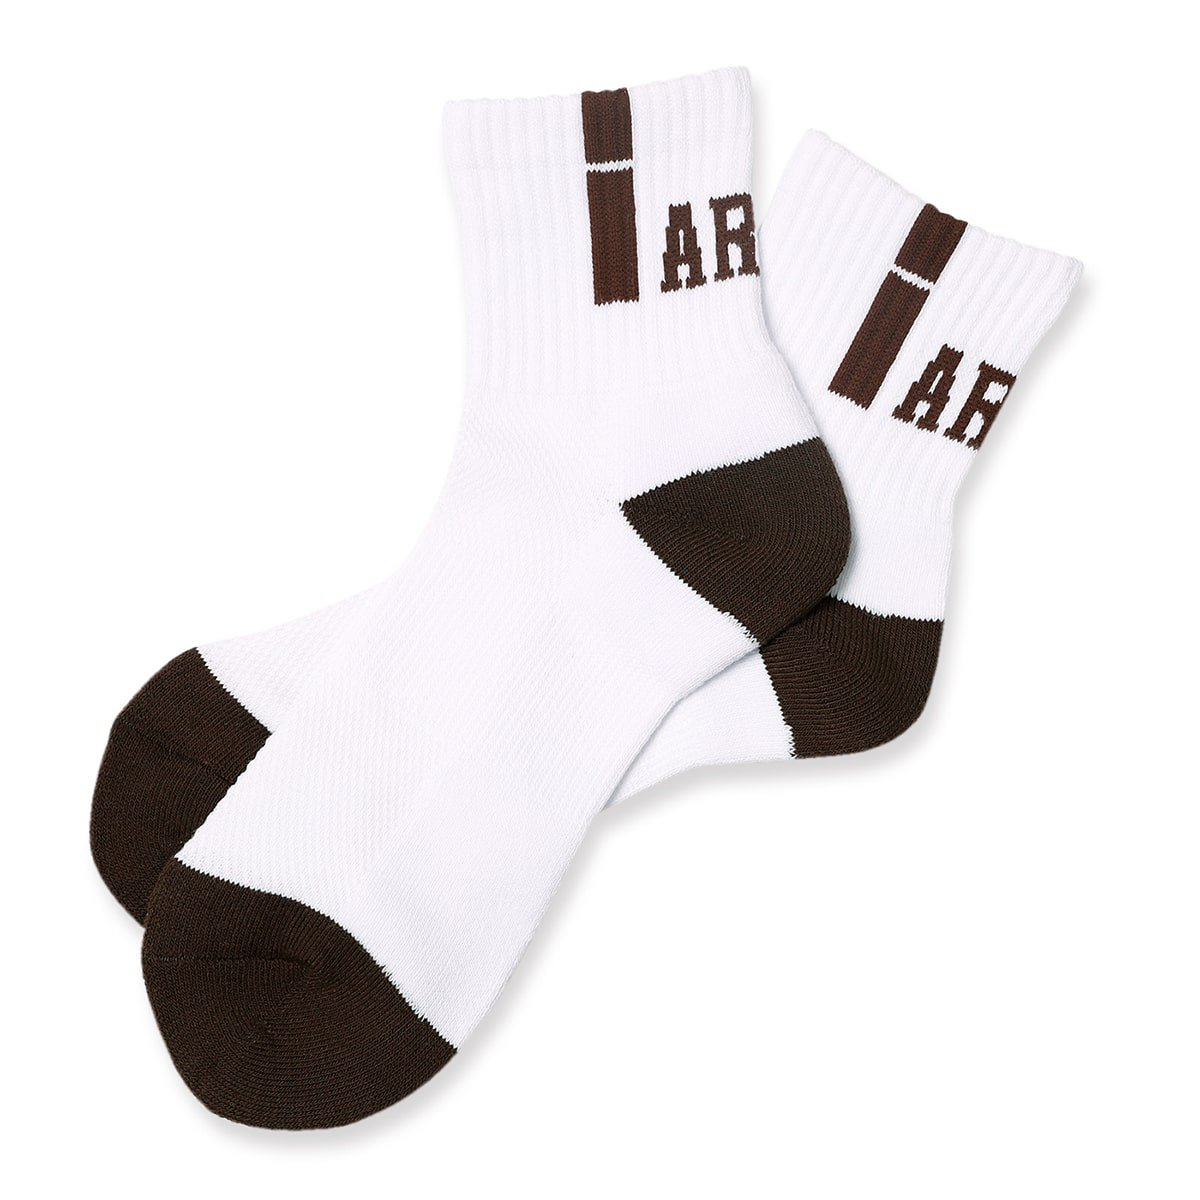 vertical crew socks【white/brown】